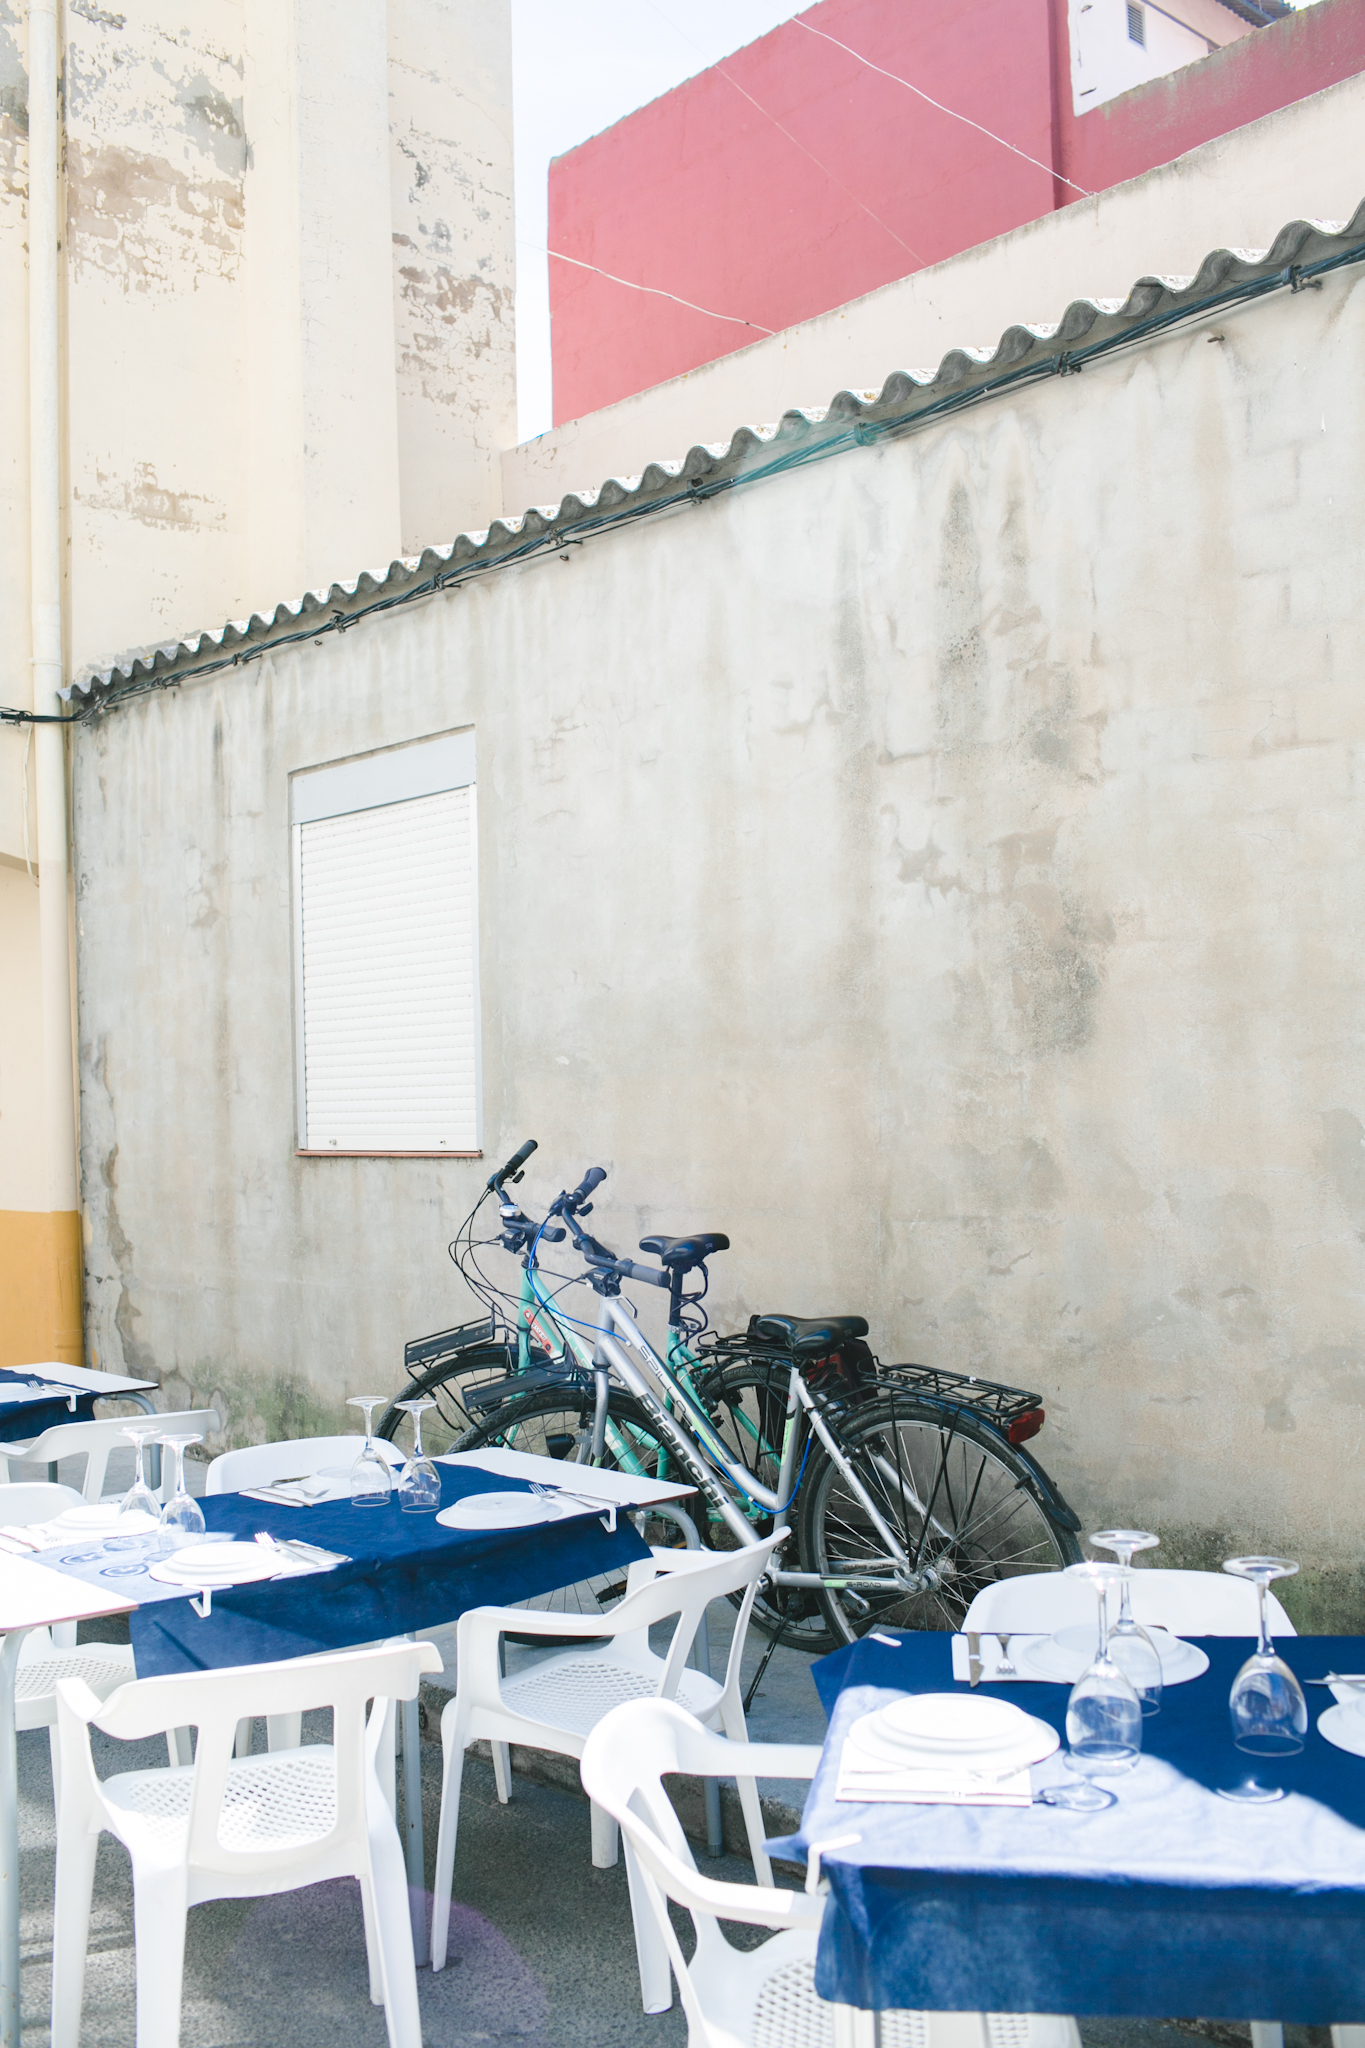 We biked to La Palmar, a small village on the other side of the lagoon. We parked our bikes to dine at a restaurant called Bon Aire.